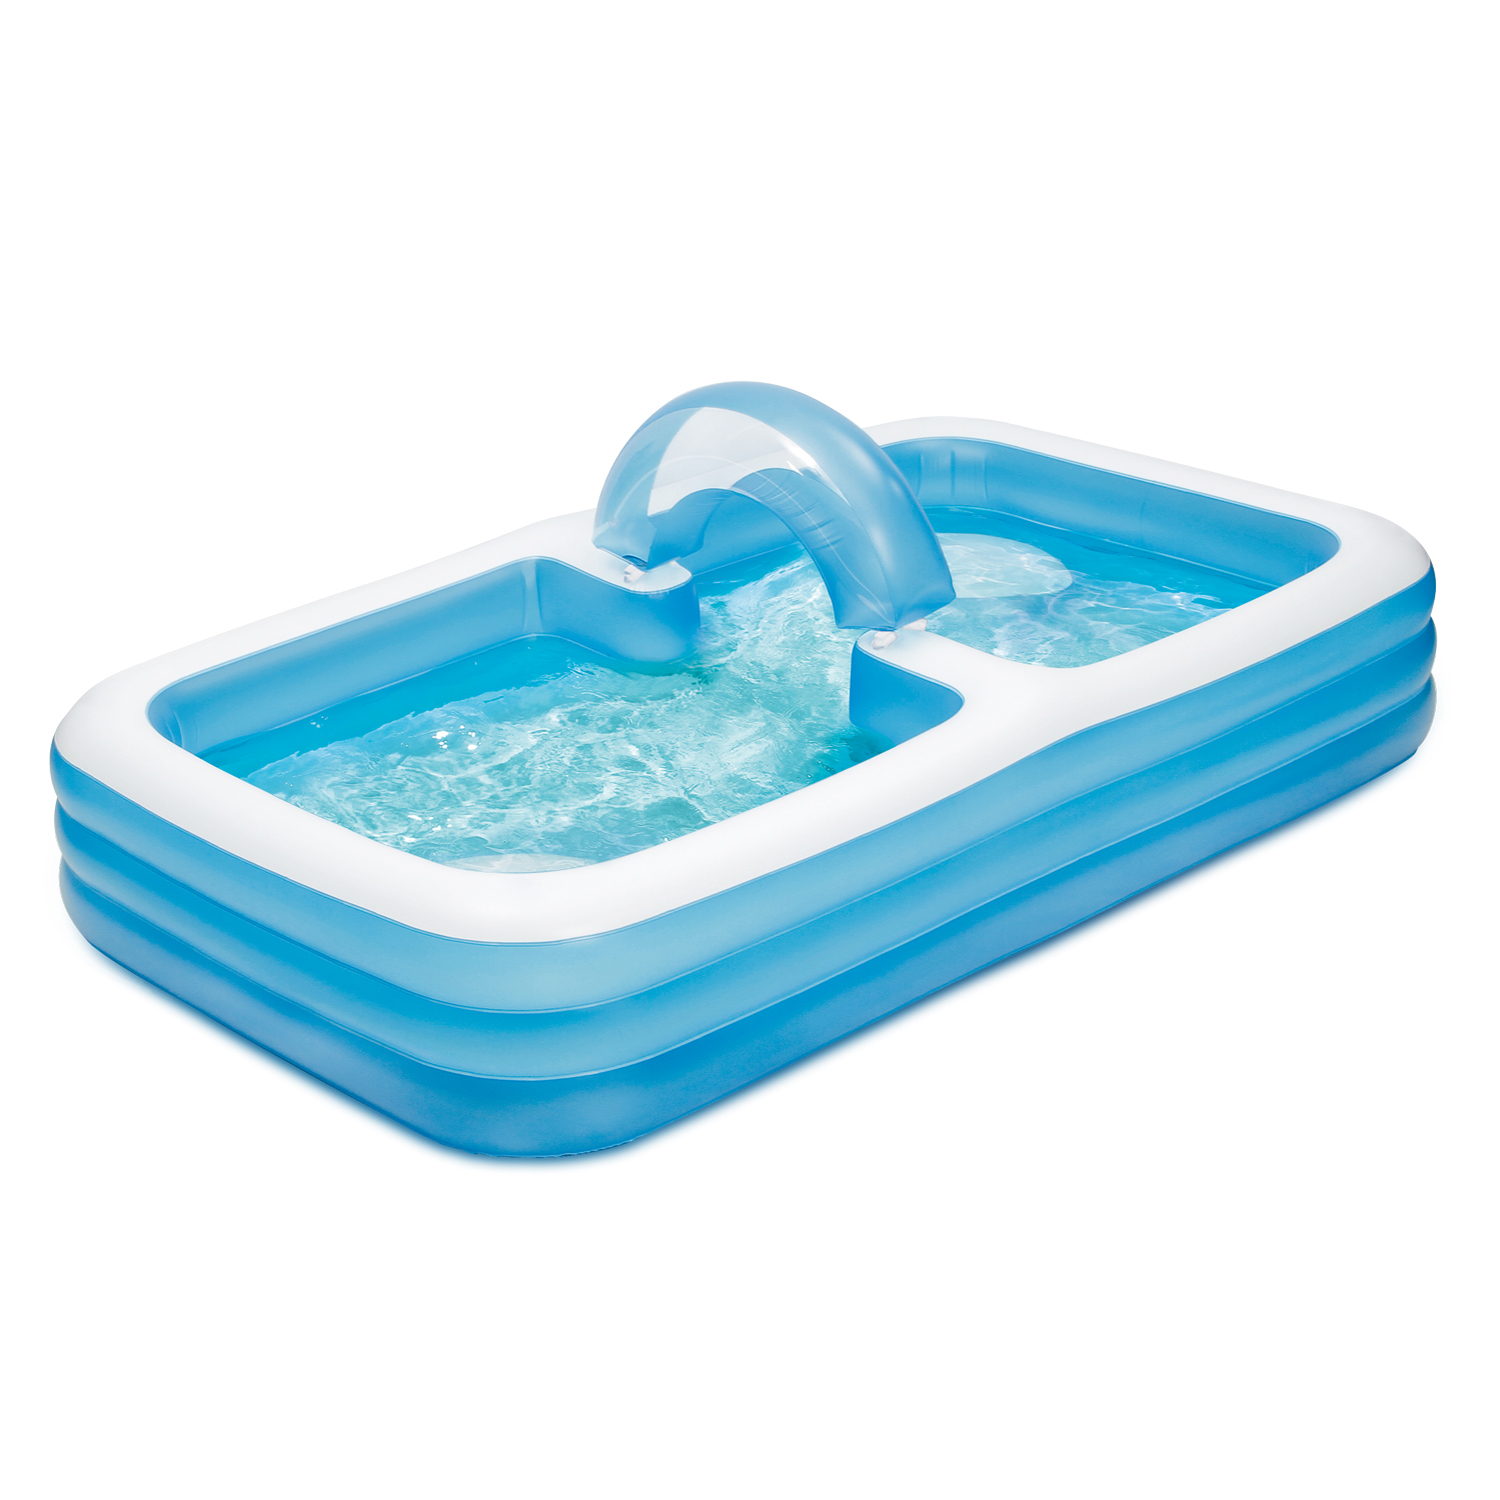 Summer Waves Inflatable Rectangular Swim Through Family Lounge Pool, 10'